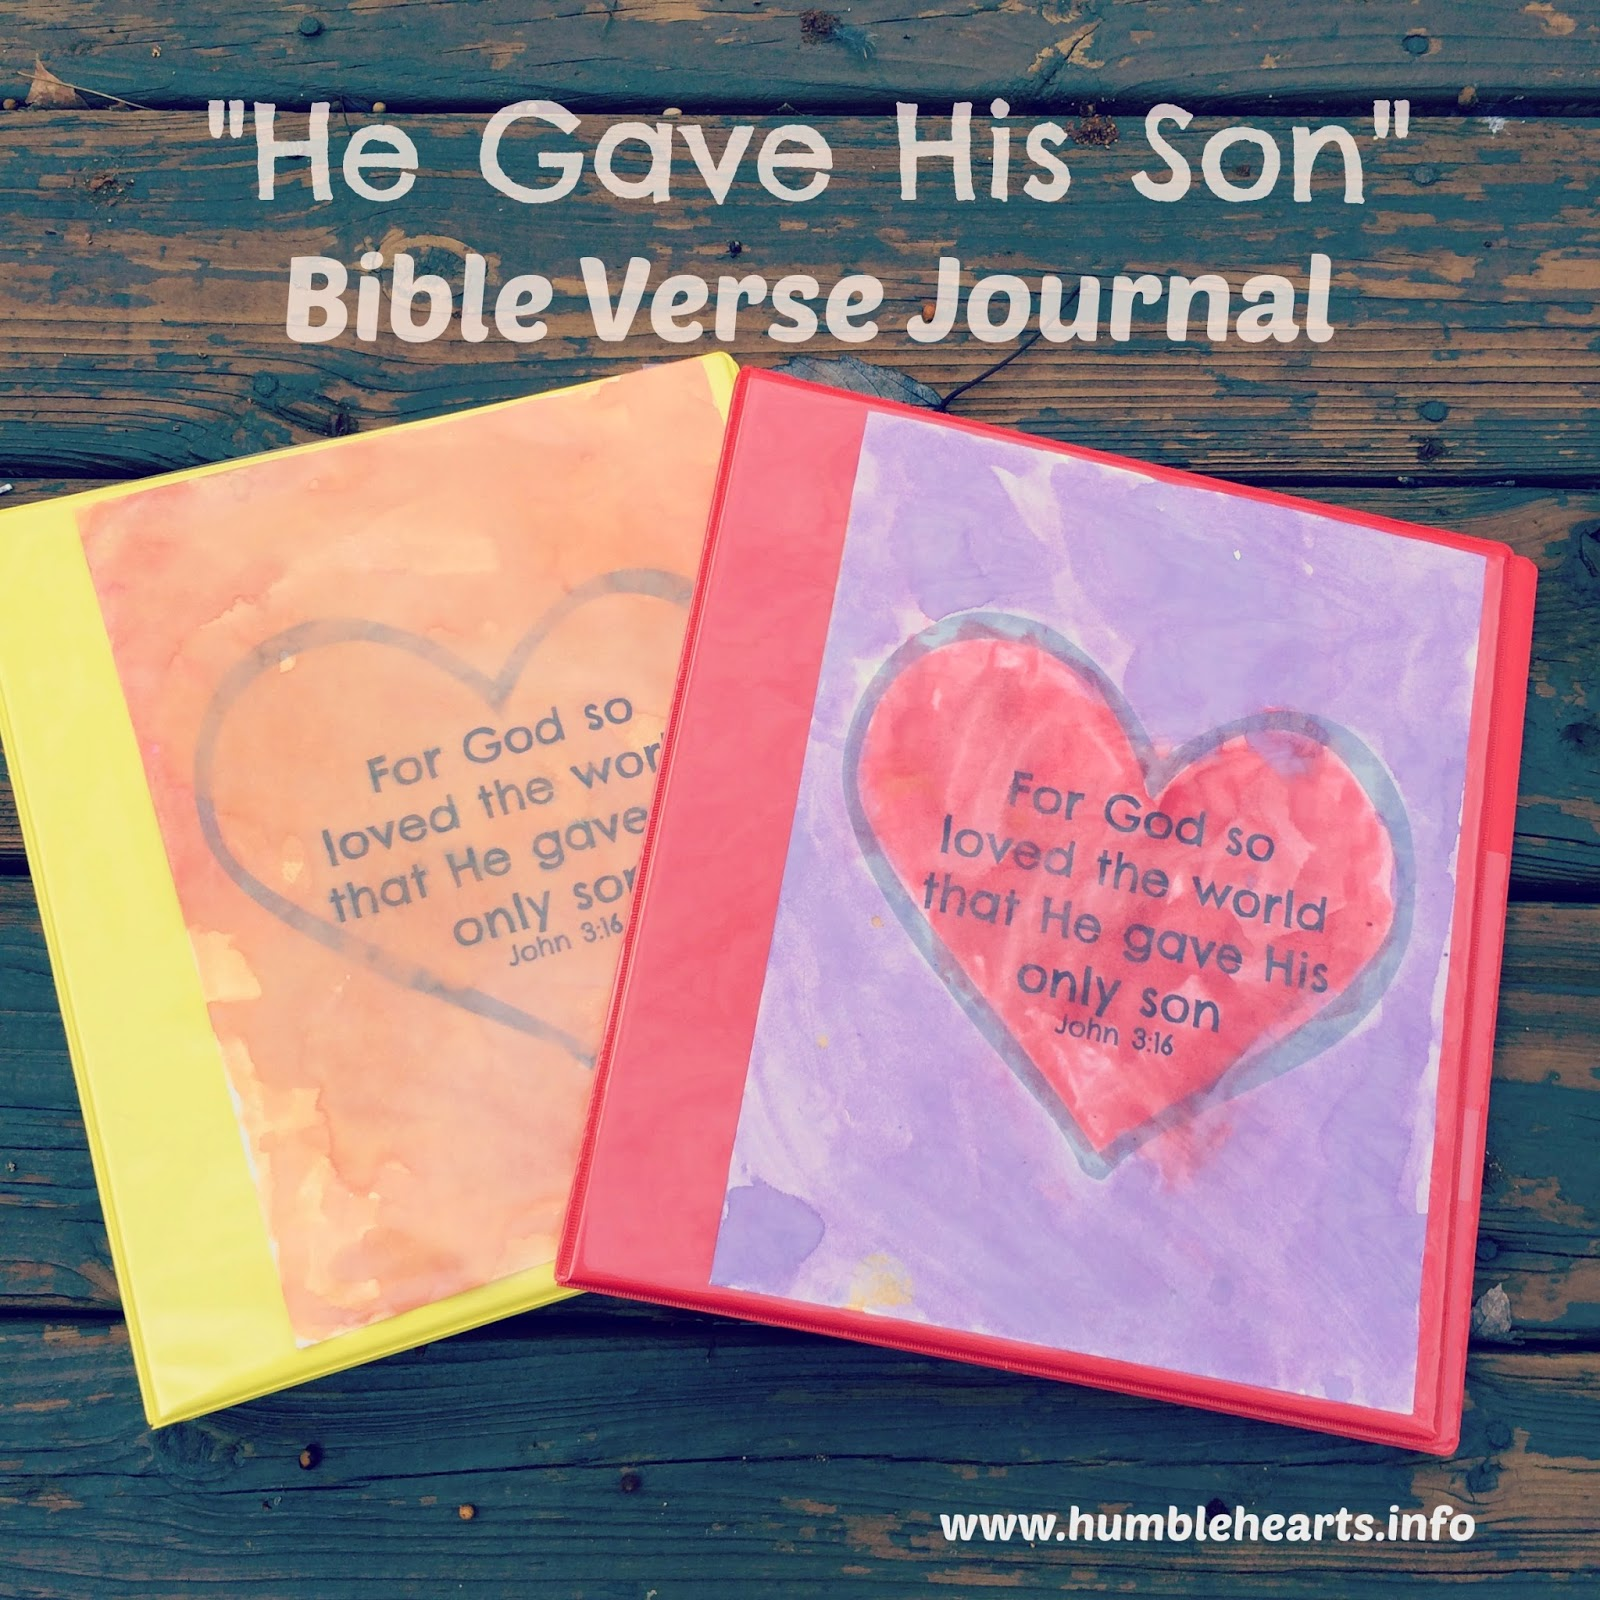 Bible Verse Journal: God Gave His Son Part 1 | Humble Hearts